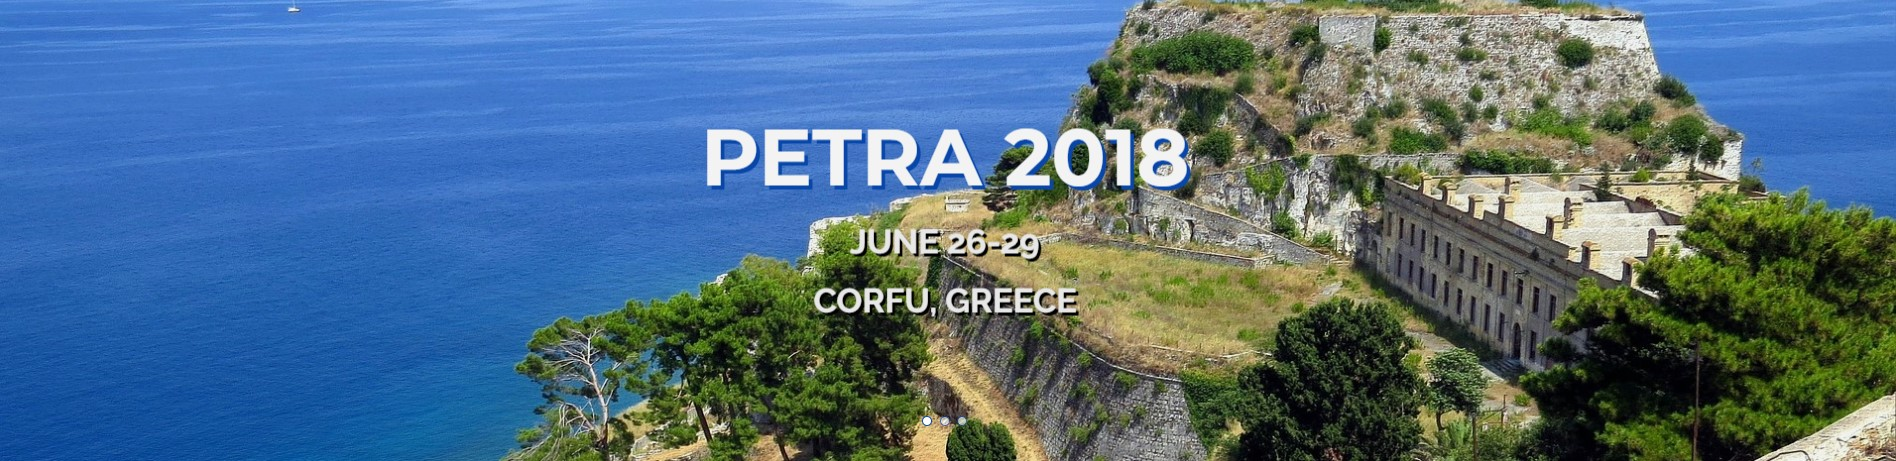 A SUITCEYES paper presented at the PETRA 2018 conference